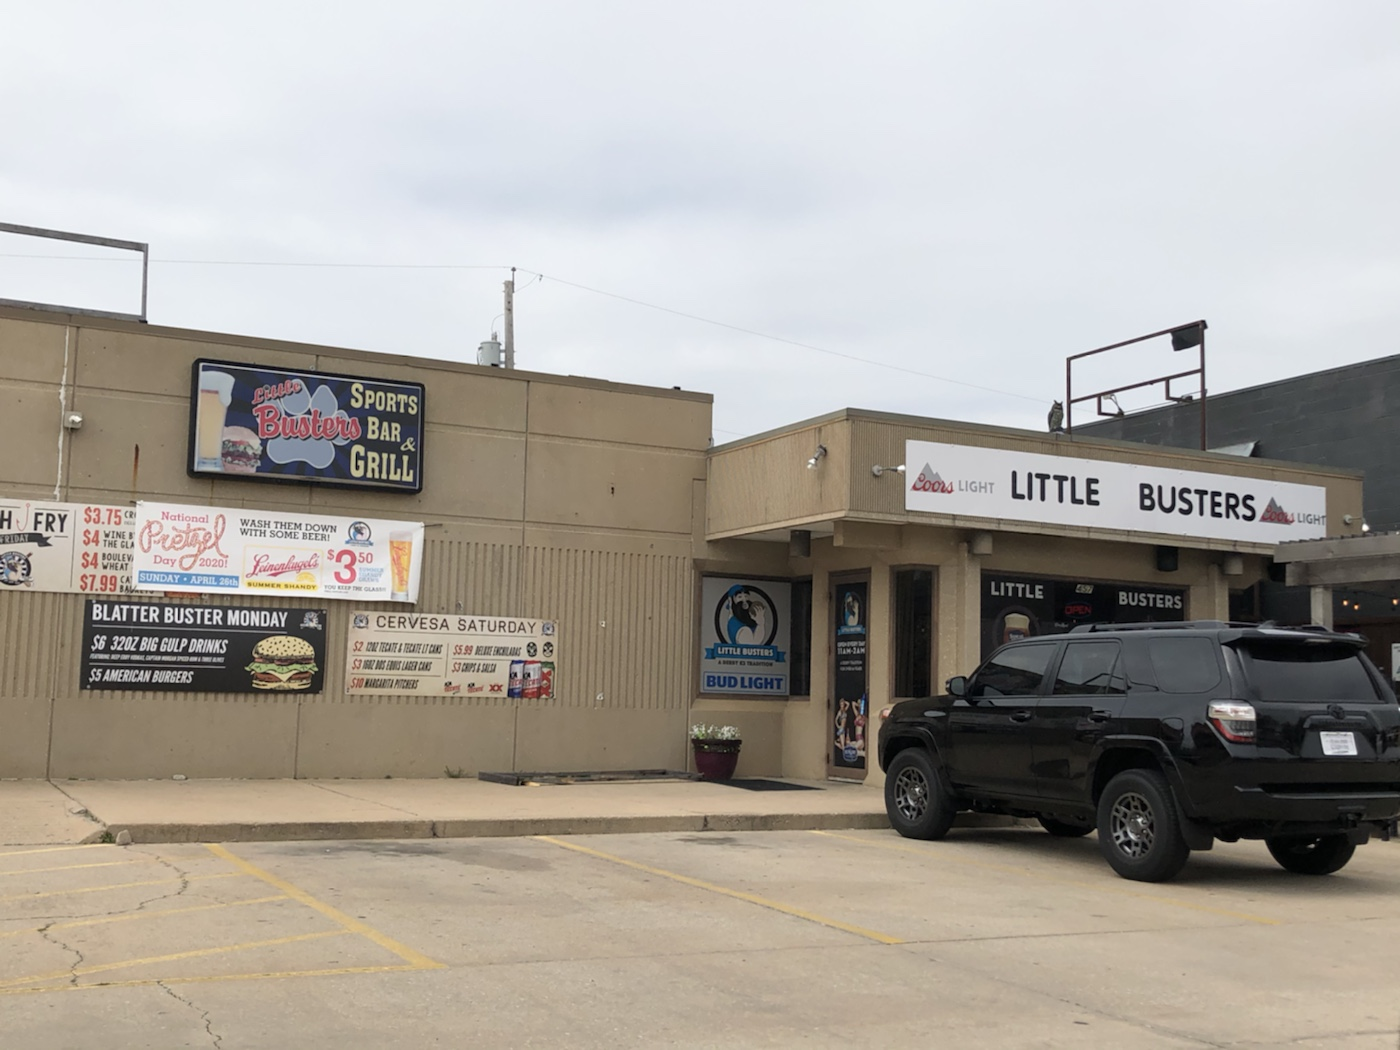 Little Busters Sport Bar & Grill